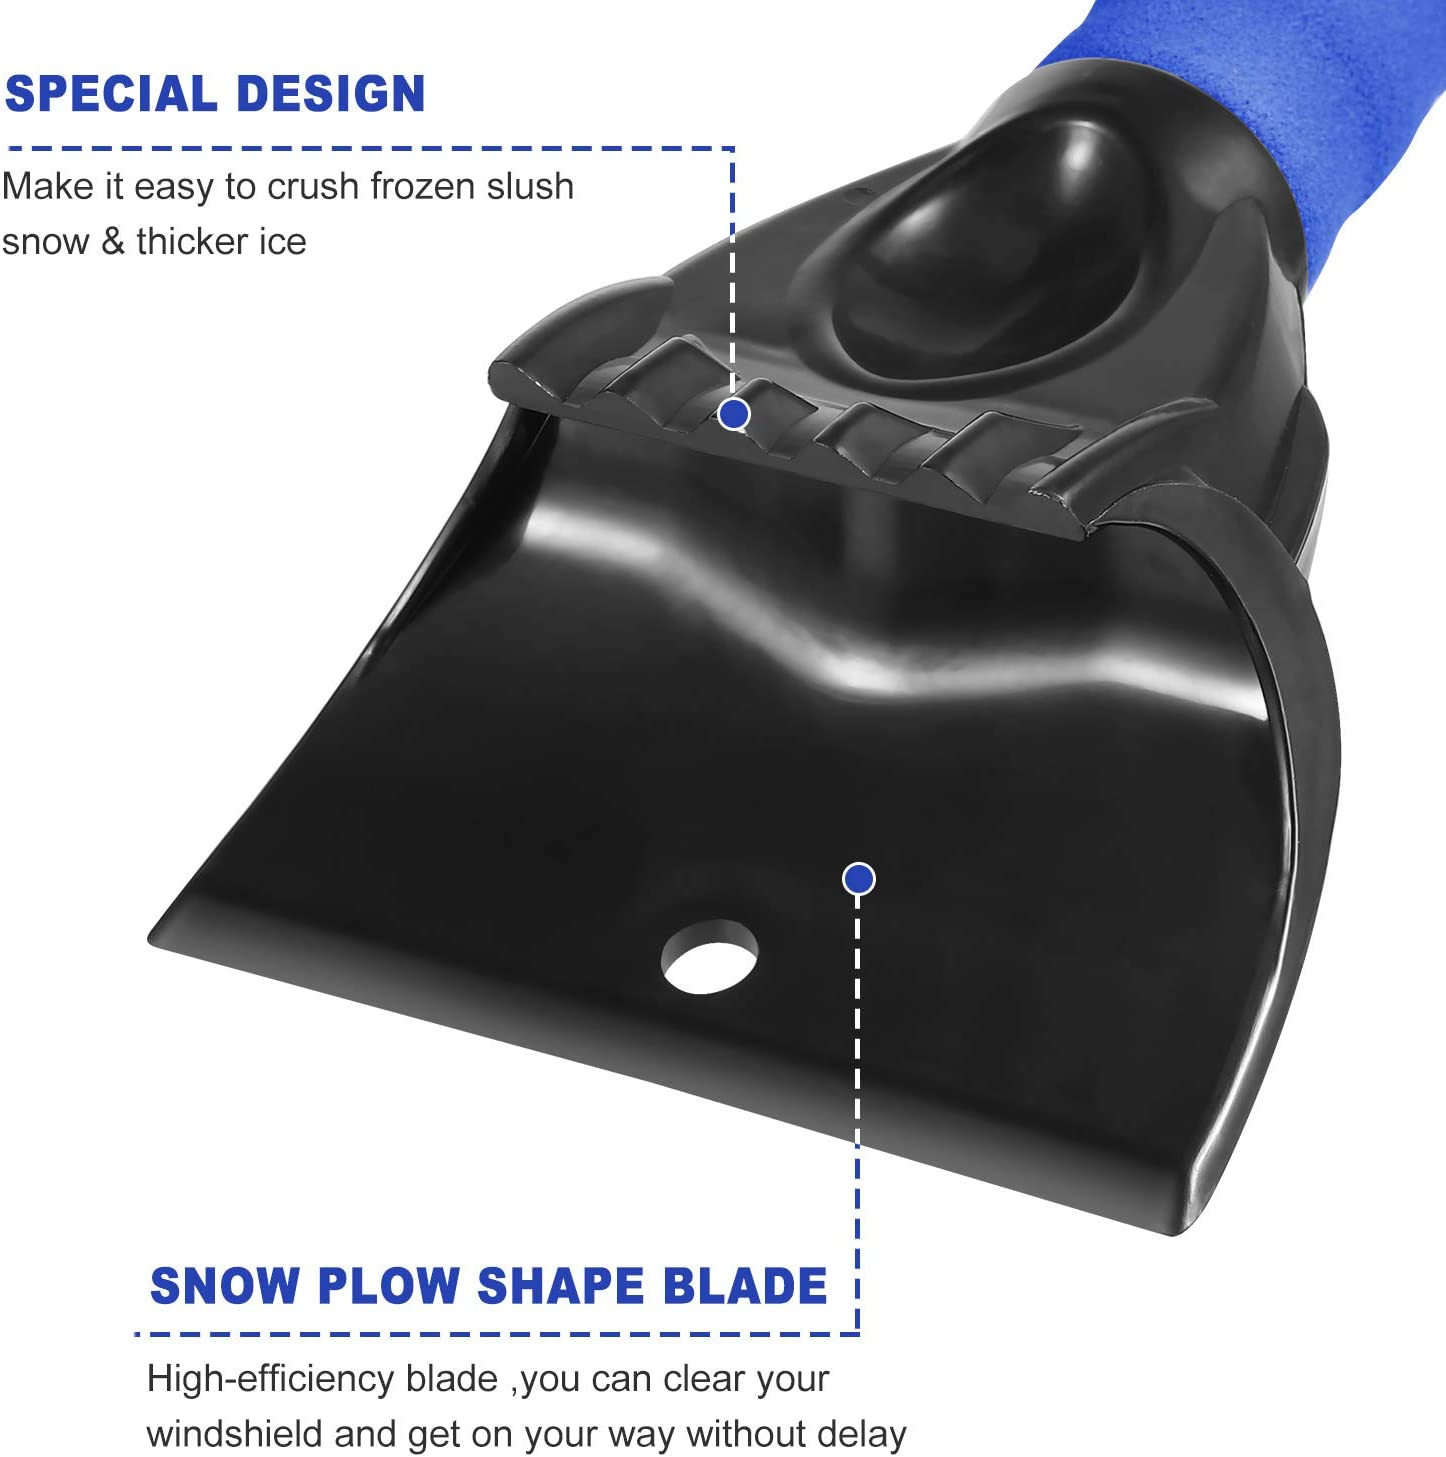 Mudder Ice Scraper with Snow Brush for Cars with Foam Handle Frost and Snow Removal Tools for Car Auto SUV Truck Windshield Windows